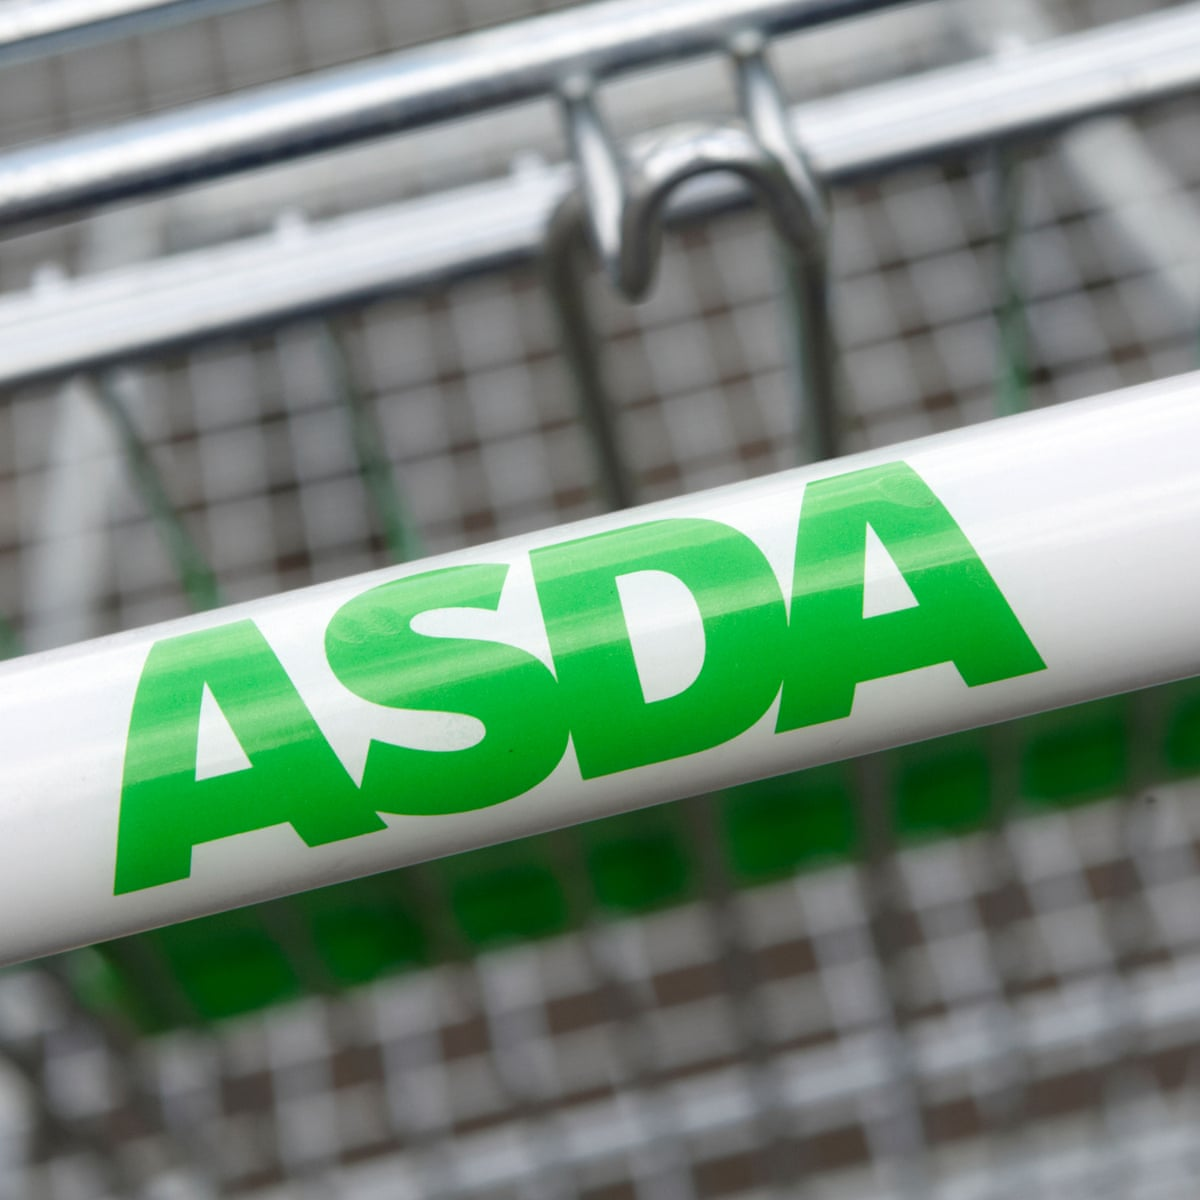 Man Posing As Asda Employee Steals 40 000 From Currency Kiosk Greater Manchester The Guardian